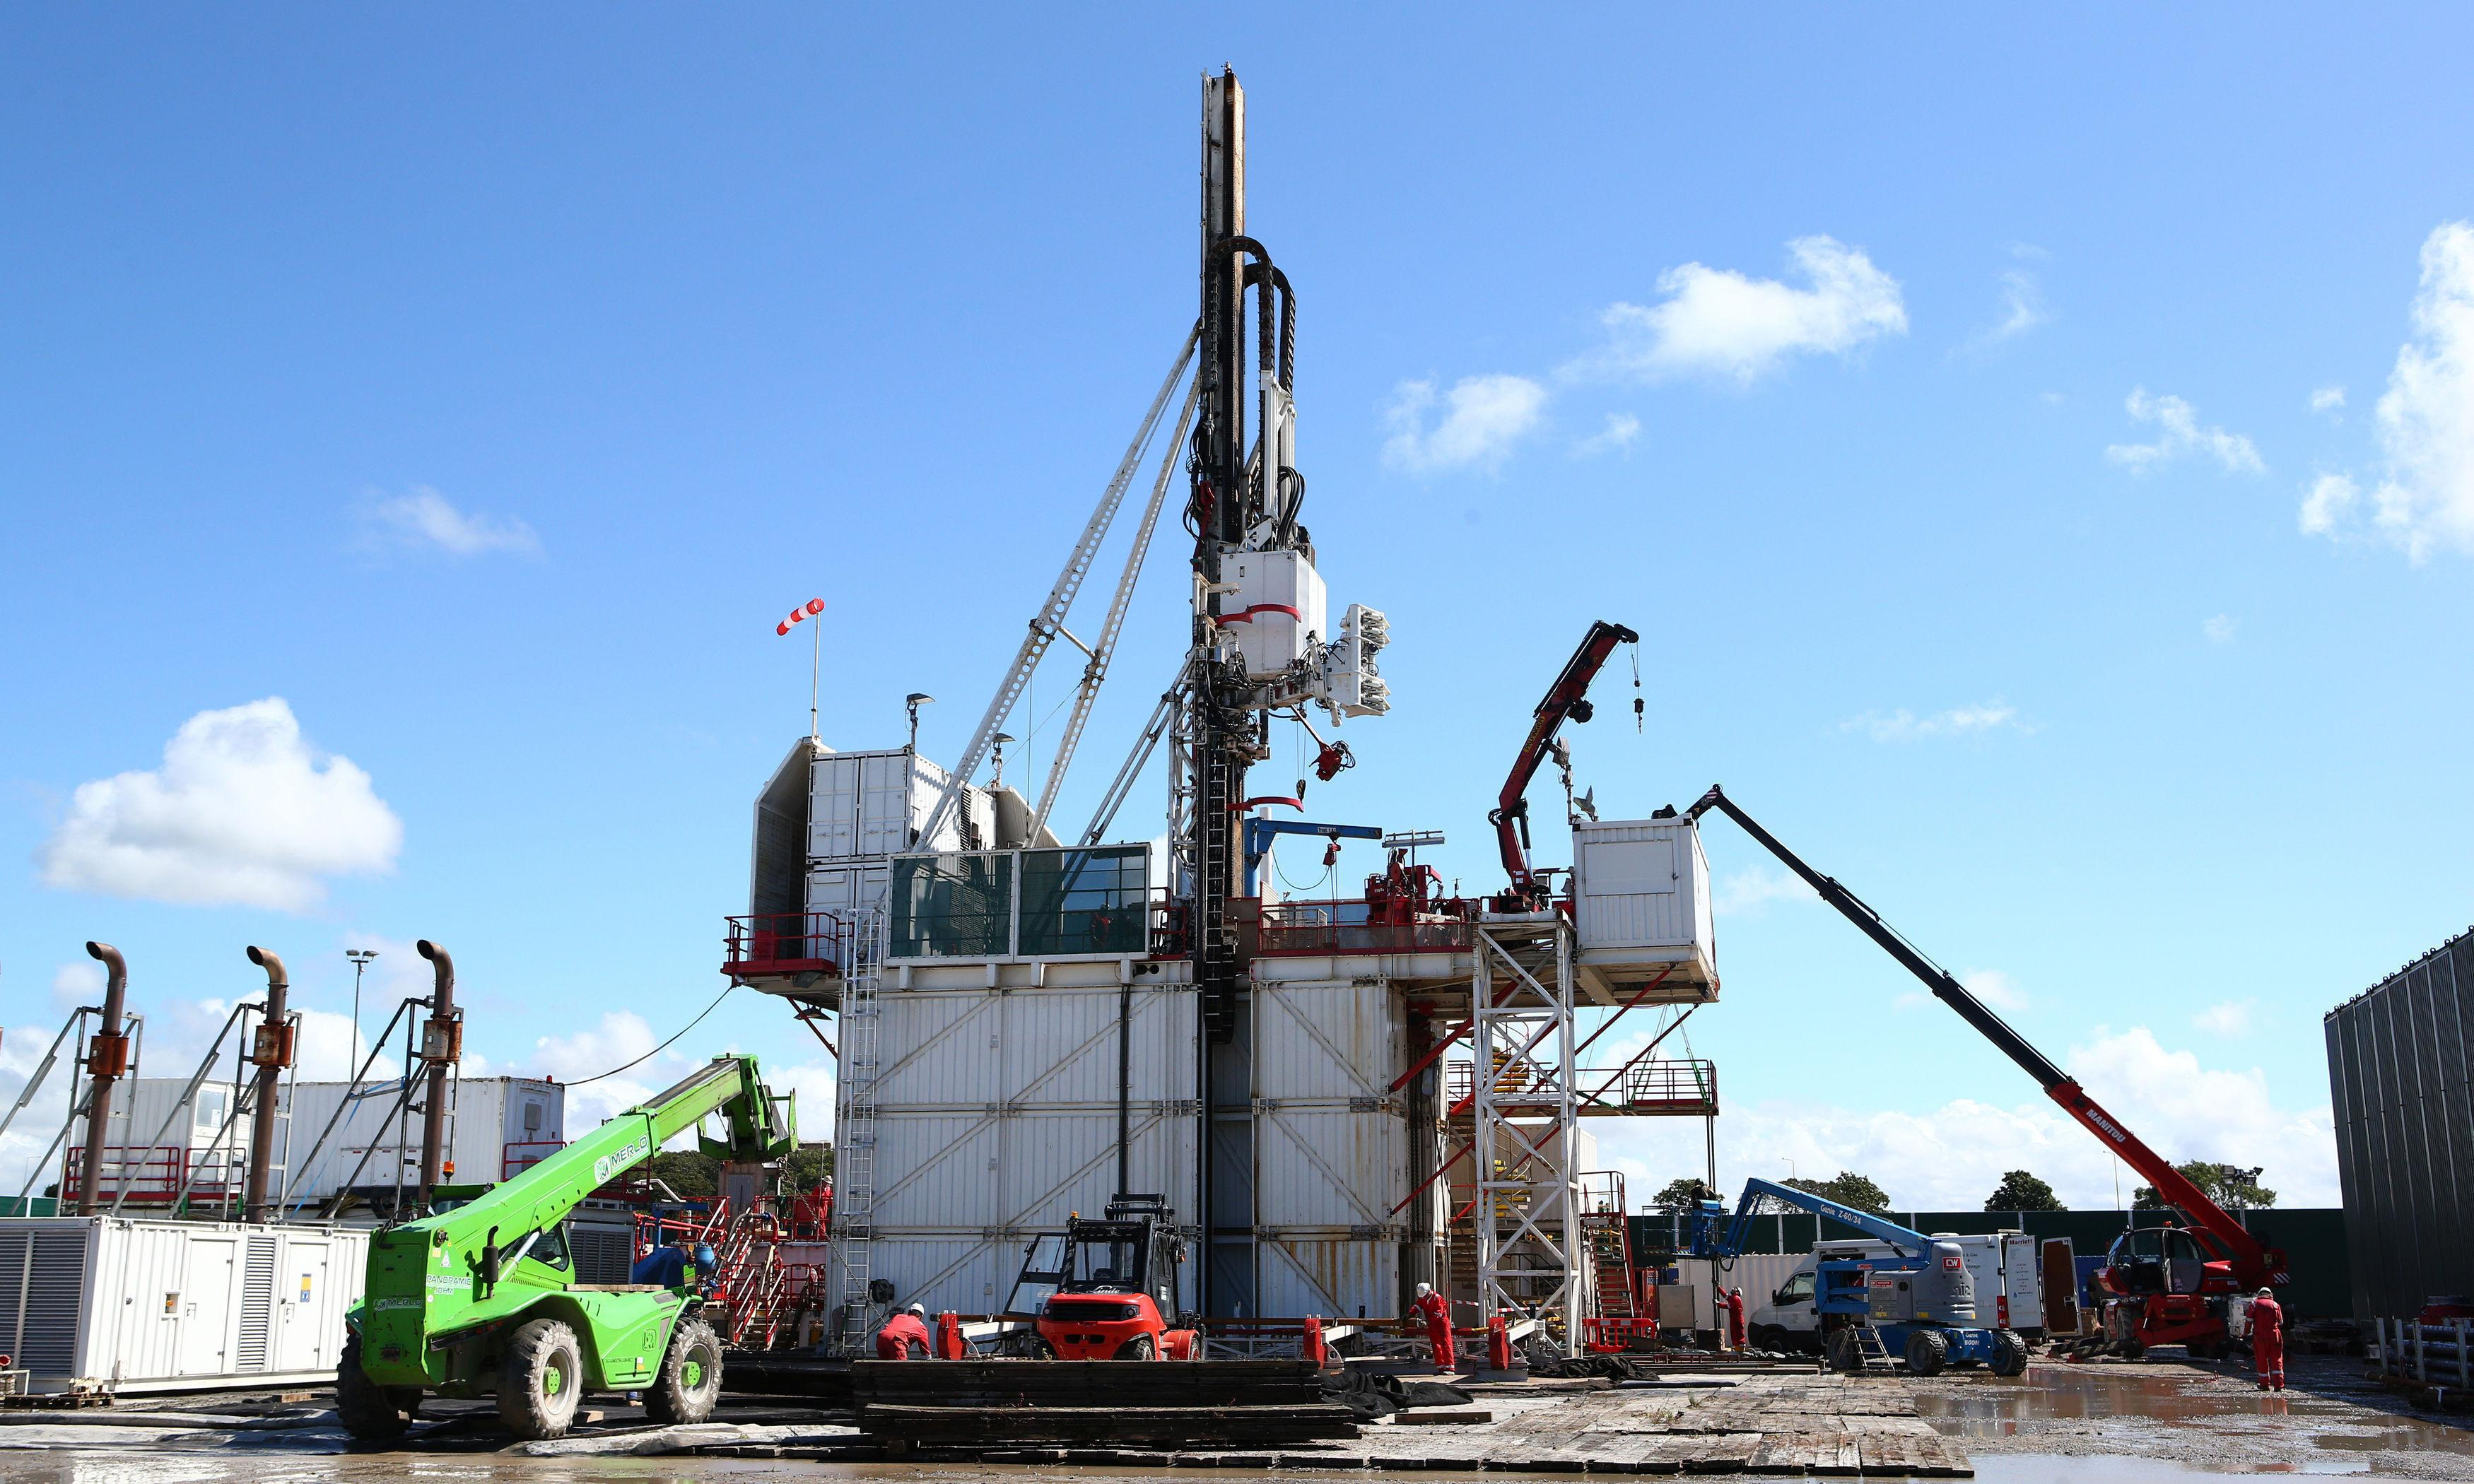 Latest fracking tremor believed to be UK's biggest yet